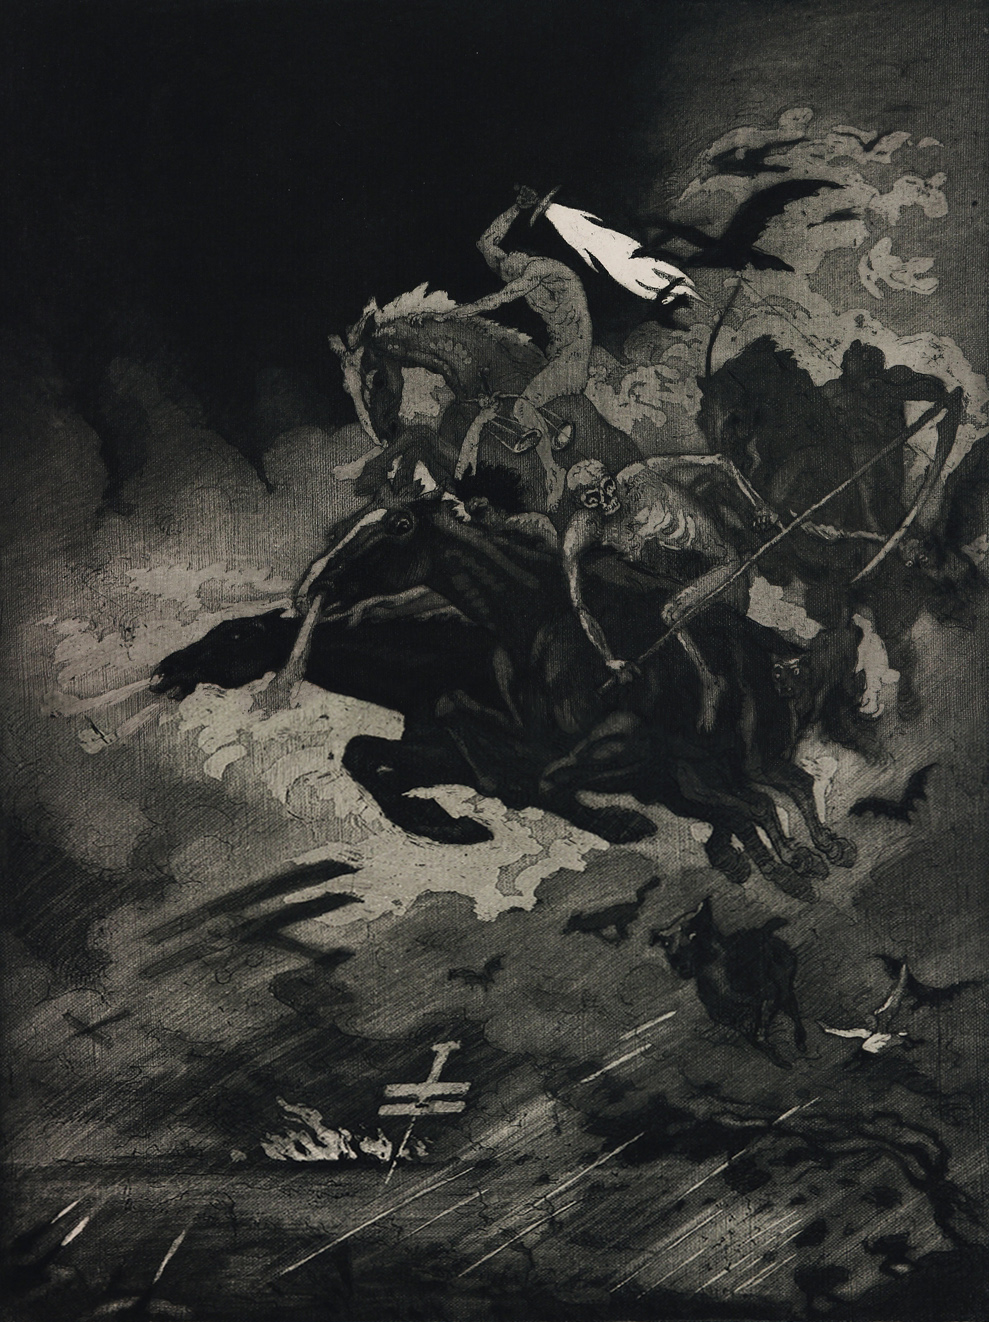 "Ludwig Hesshaimer - Horsemen of the Apocalypse - ""And over man and beast and earth the horsemen of the apocalypse spread unspeakable horrors."""